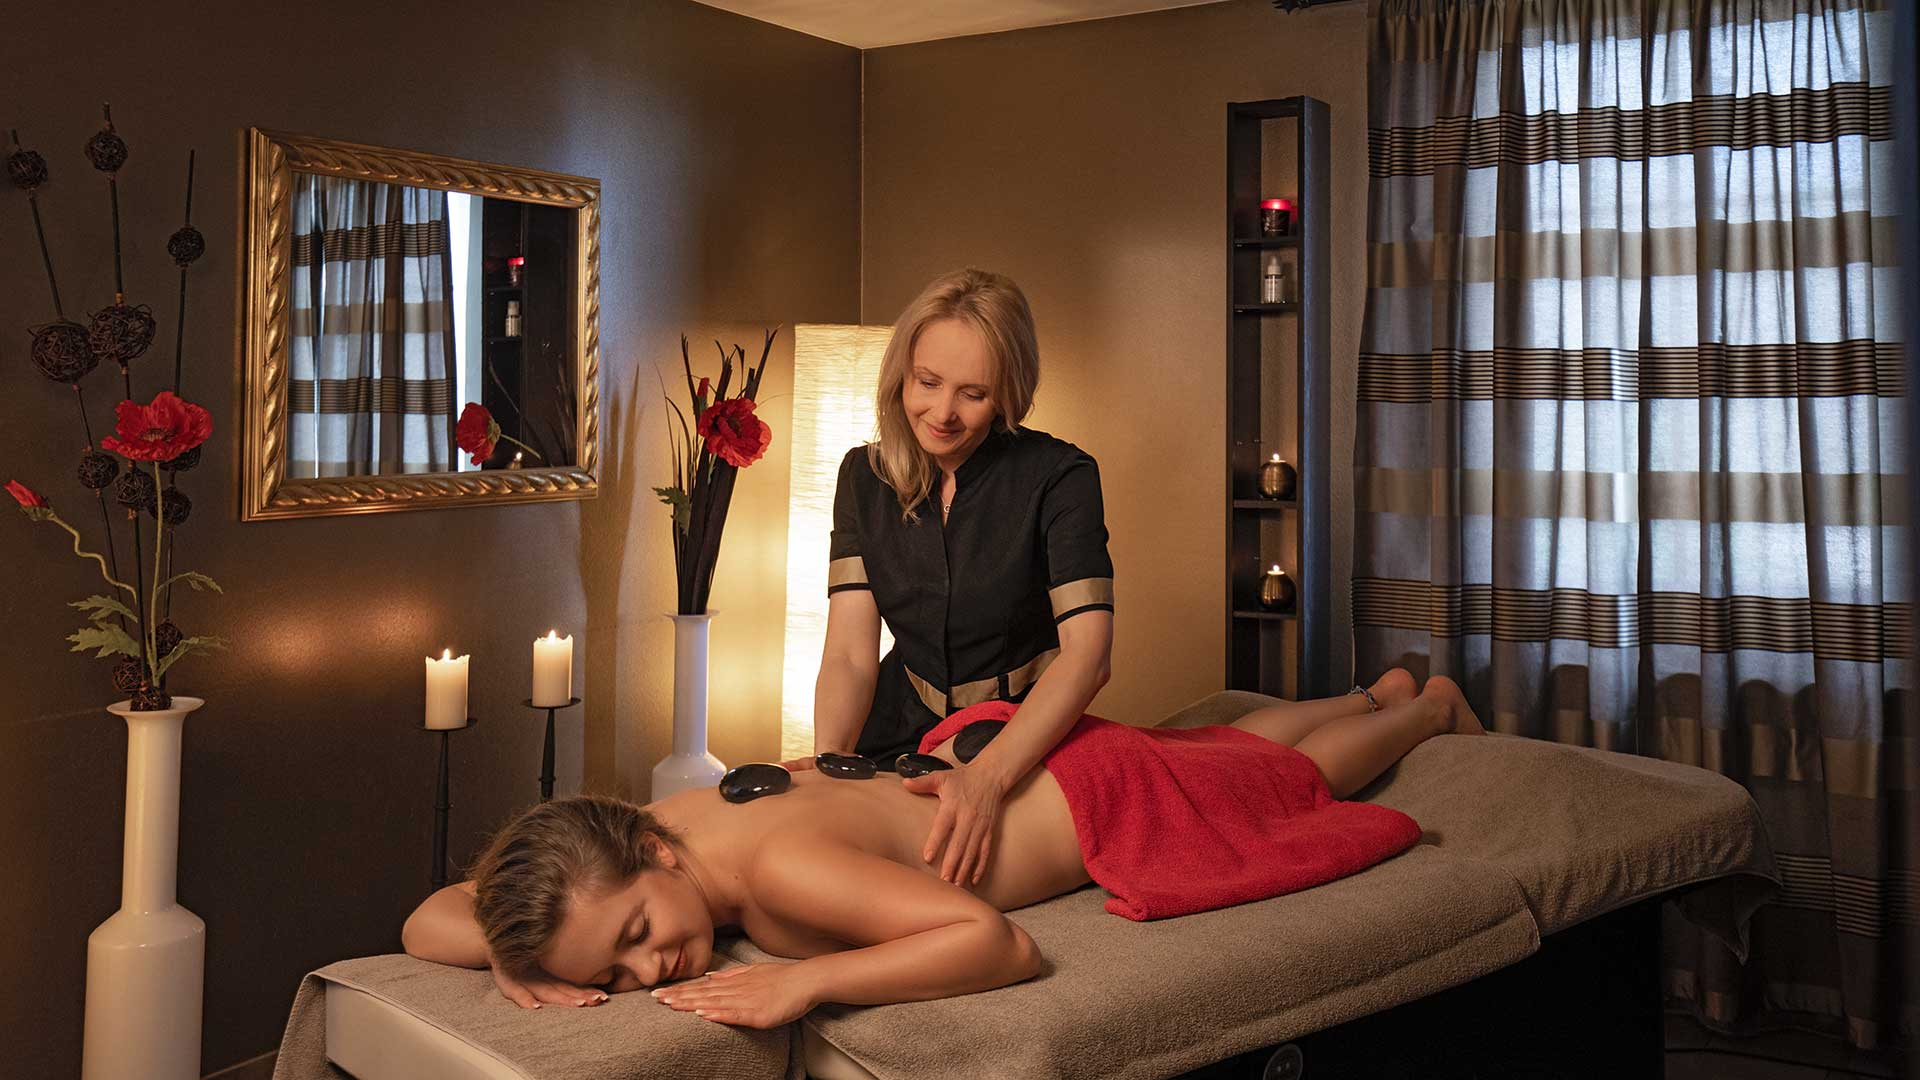 Hot Stone Massage im Wellnesshotel am Bodensee